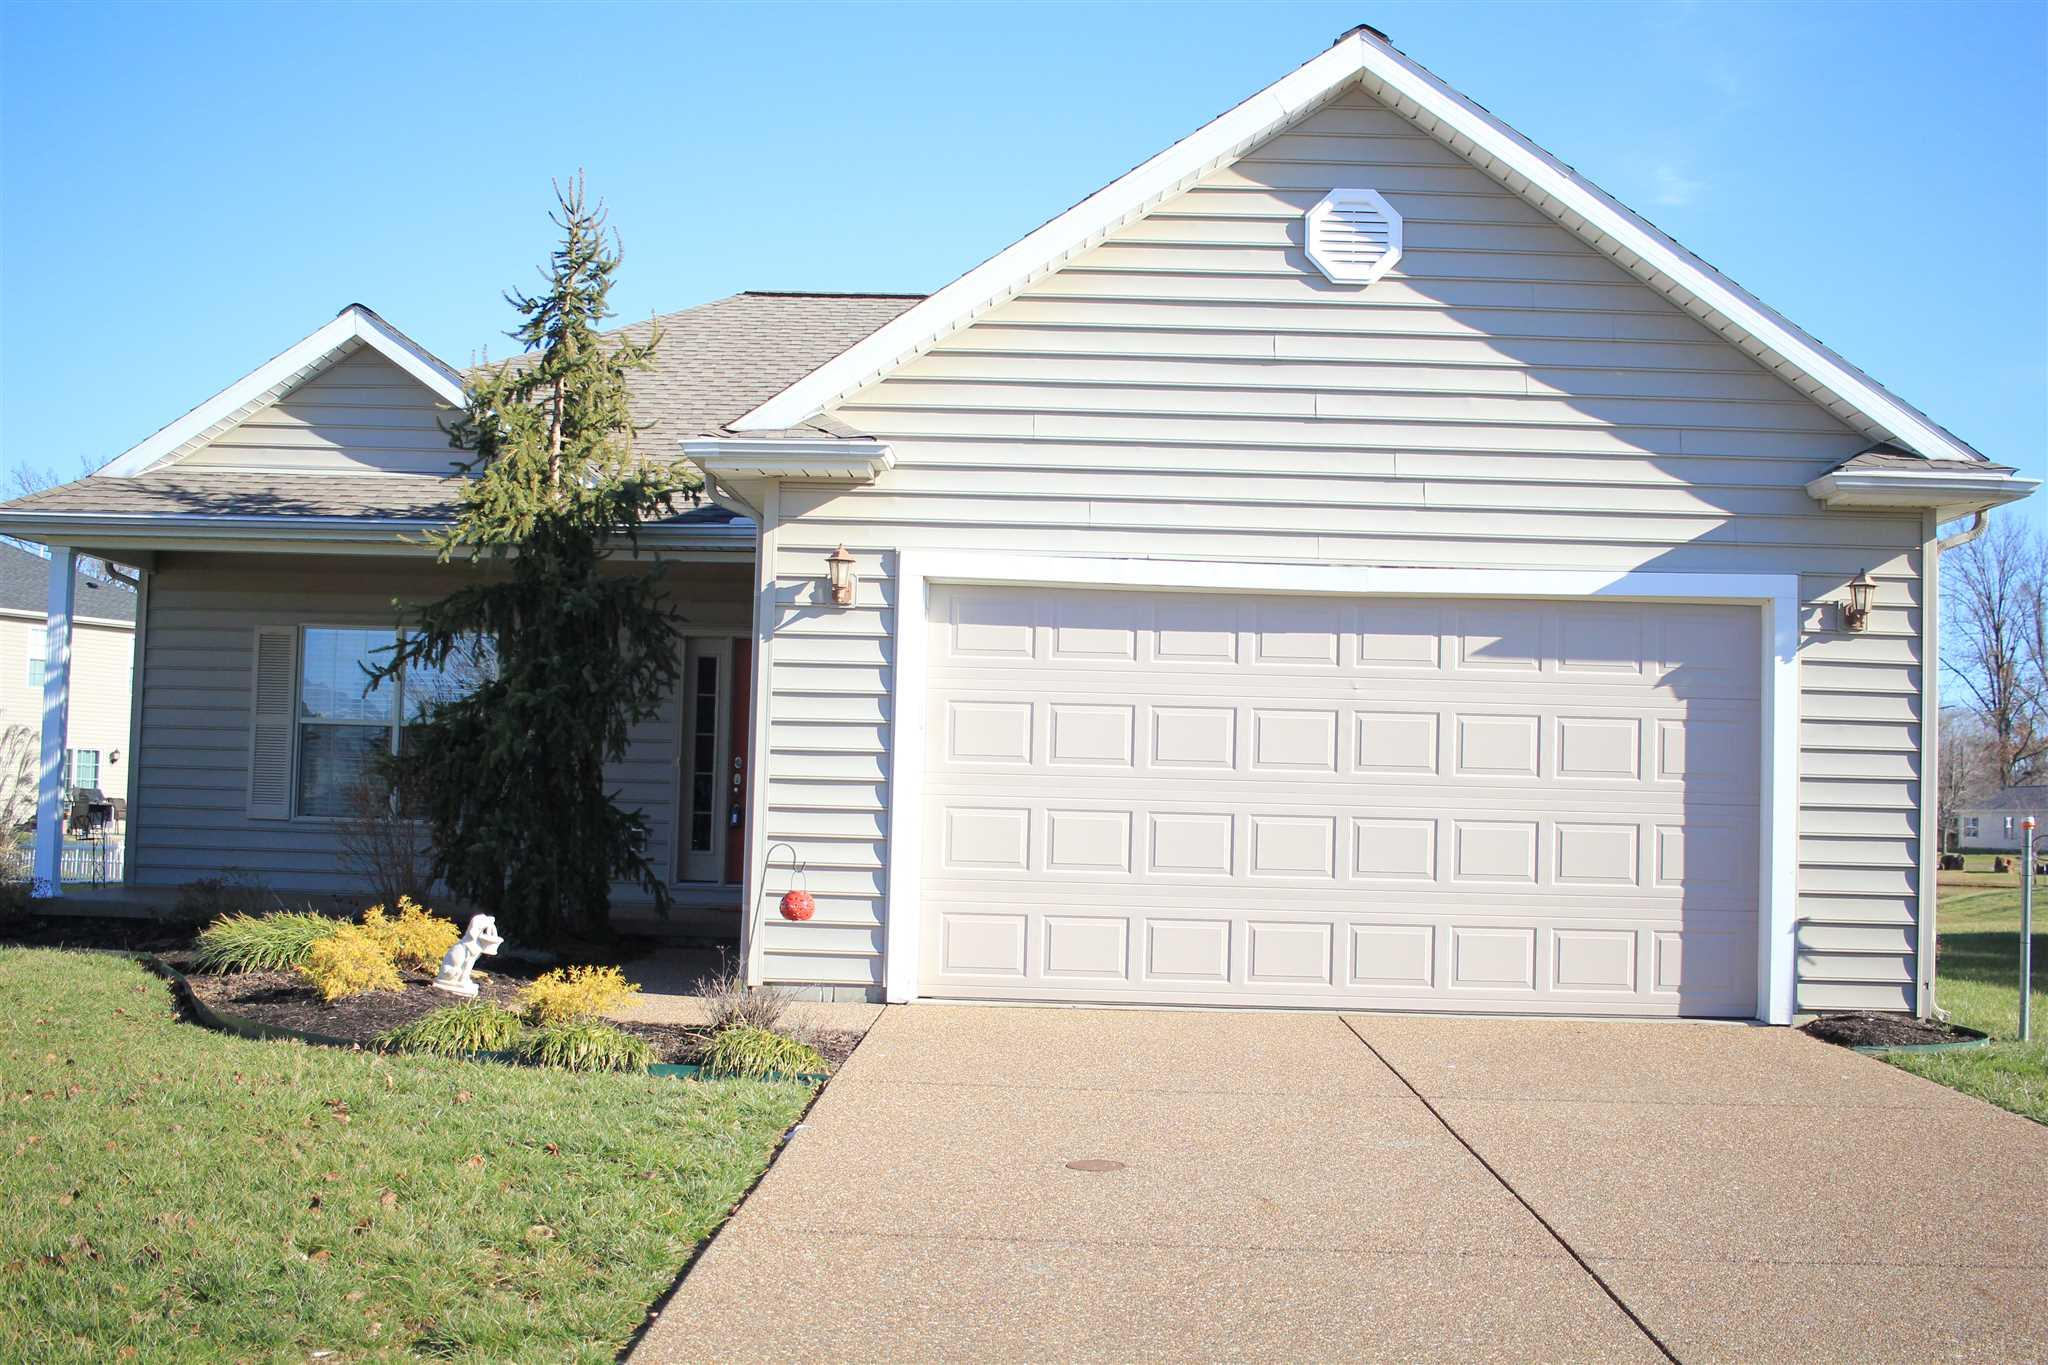 Great home ready for a new owner to love as much as the current owner.  You will be greeted by beautiful professional landscaping by Stocker's and a large open front porch. Step inside to a spacious great room that opens to the kitchen and dining area. Kitchen features:  castled cabinetry, a large pantry, stainless steel appliances, newer upgraded DW, MW, new faucet, under cabinet lighting, eating bar. Beautiful view from the dining area through the extra tall patio door.  Master bedroom has access to the covered back porch and has a view of the lake. Nice walk-in closet, master bath with double sinks, new step-in shower, glass block window, newer carpet. Other 2 bedrooms have large closets and are split from the master. Nice hall bath. Laundry room has shelving – front load Samsung W/D with drawers are included. Soft wall colors, 9' ceilings, finger groove molding. There is a new wireless garage door opener.  200 amp electric.  HVAC 2 years old, 98% efficiency with an Aprilaire Air filter. Relax on the covered back porch and enjoy the lake. Lot extends into the lake. Lovely home with a spacious feel.